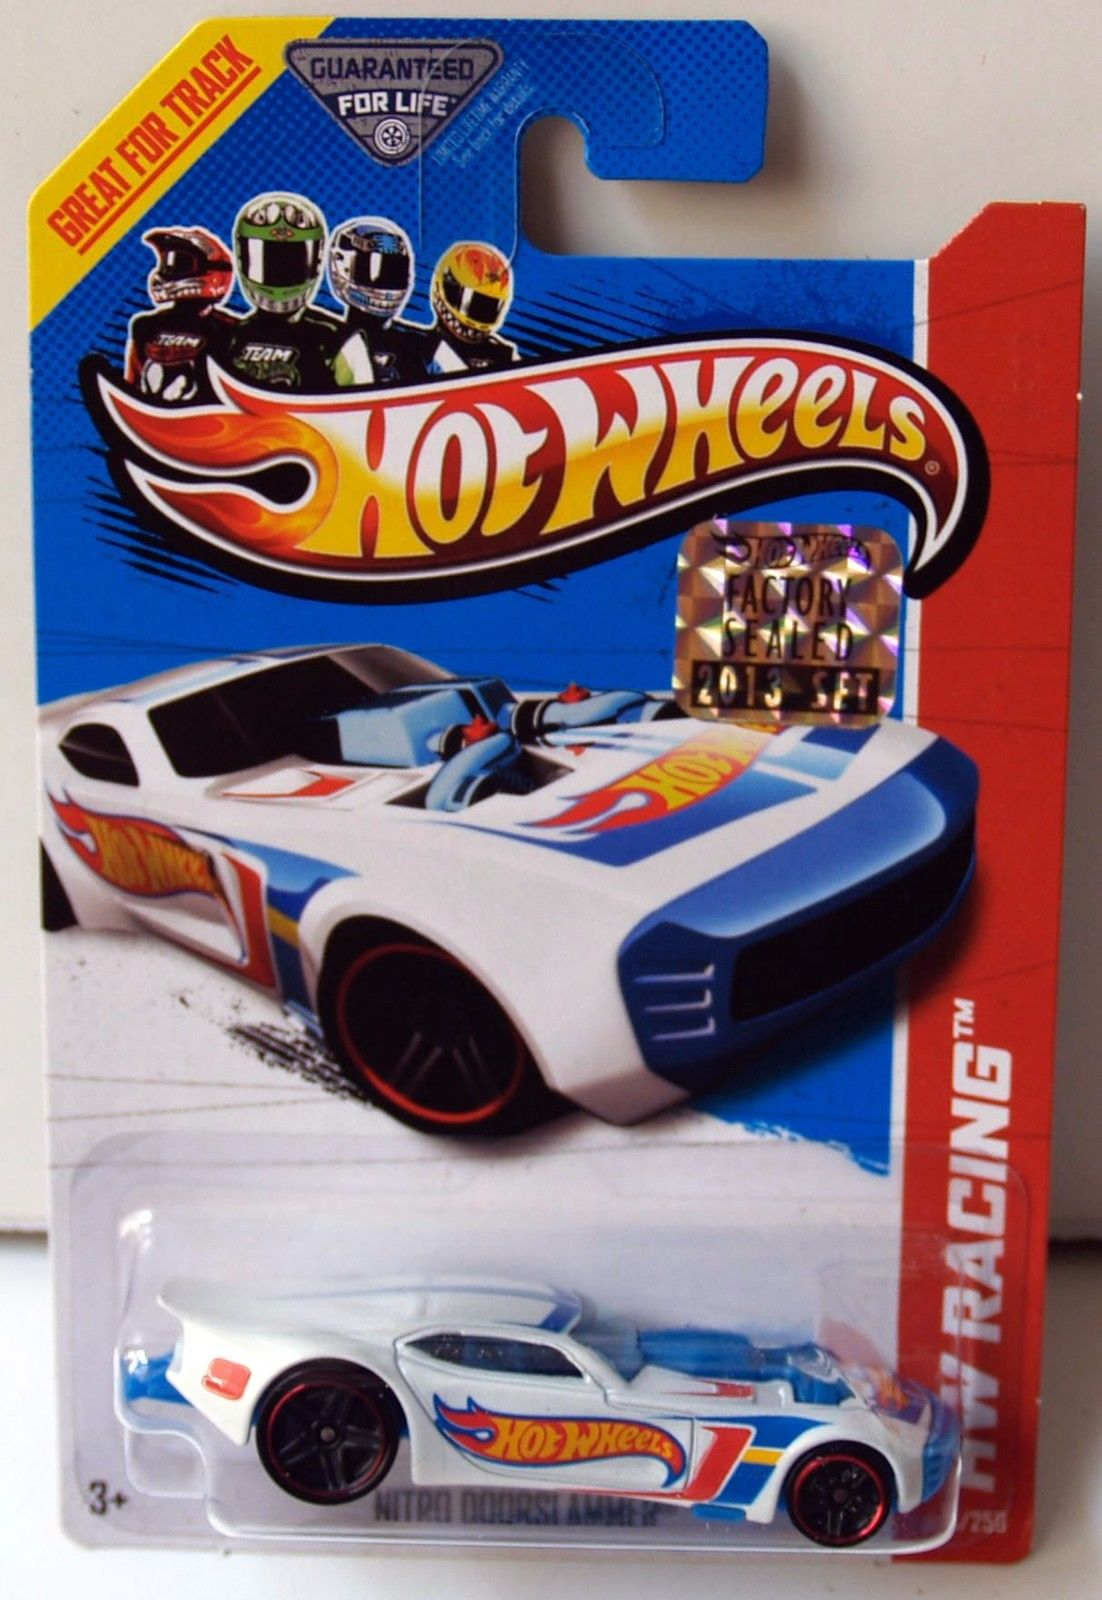 HOT WHEELS 2013 HW RACING - HW RACE TEAM NITRO DOORSLAMMER FACTORY SEALED